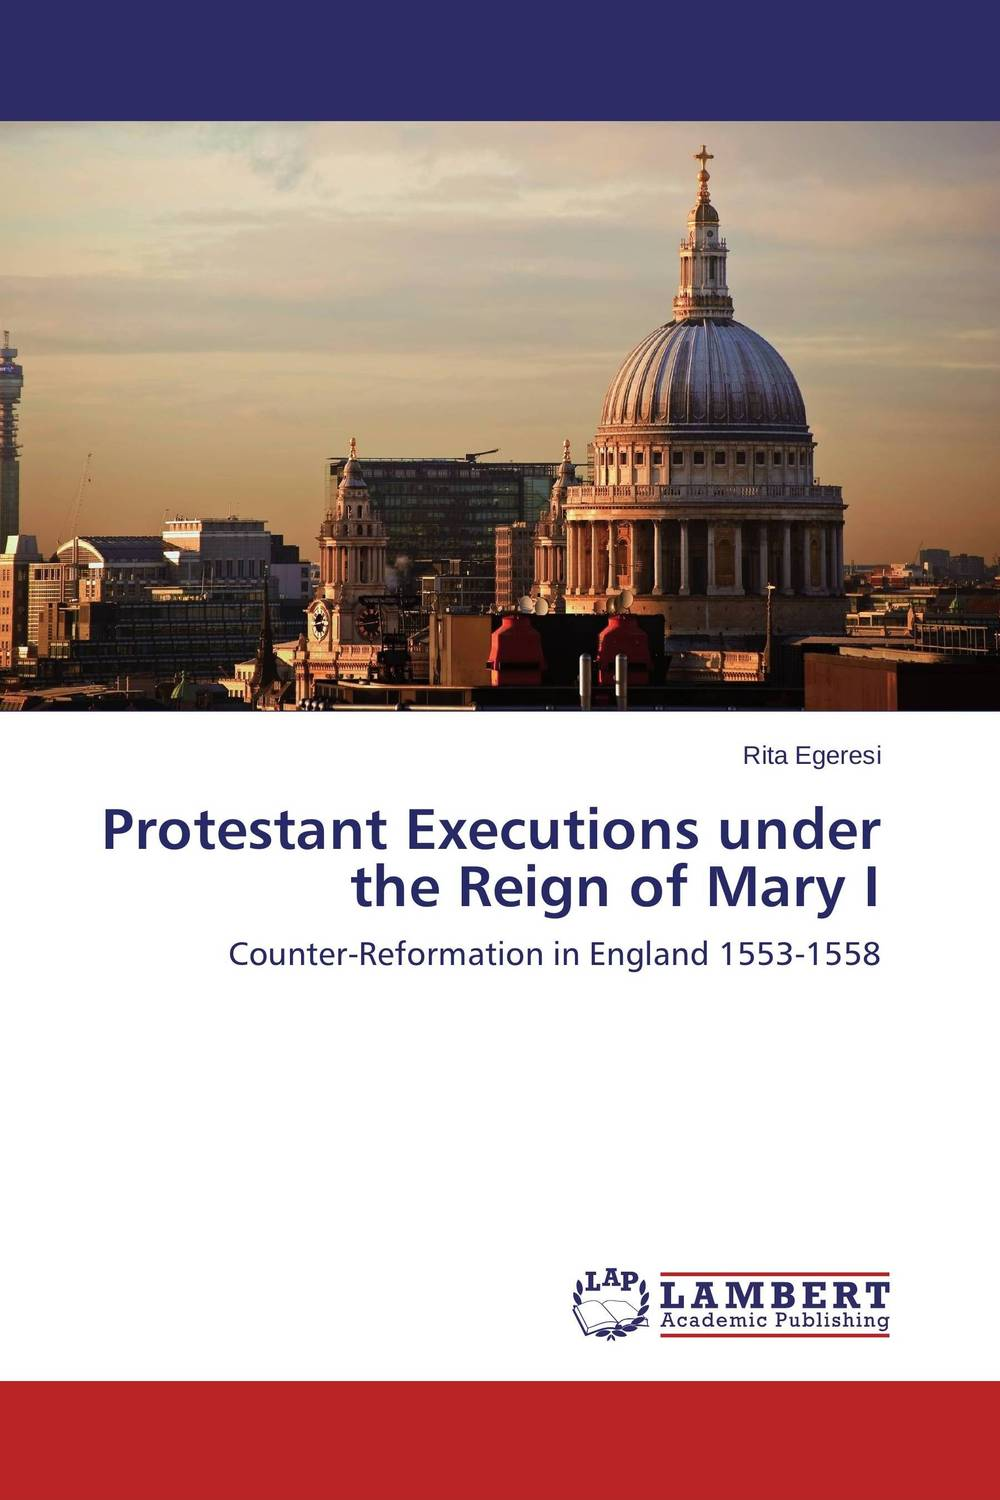 Protestant Executions under the Reign of Mary I